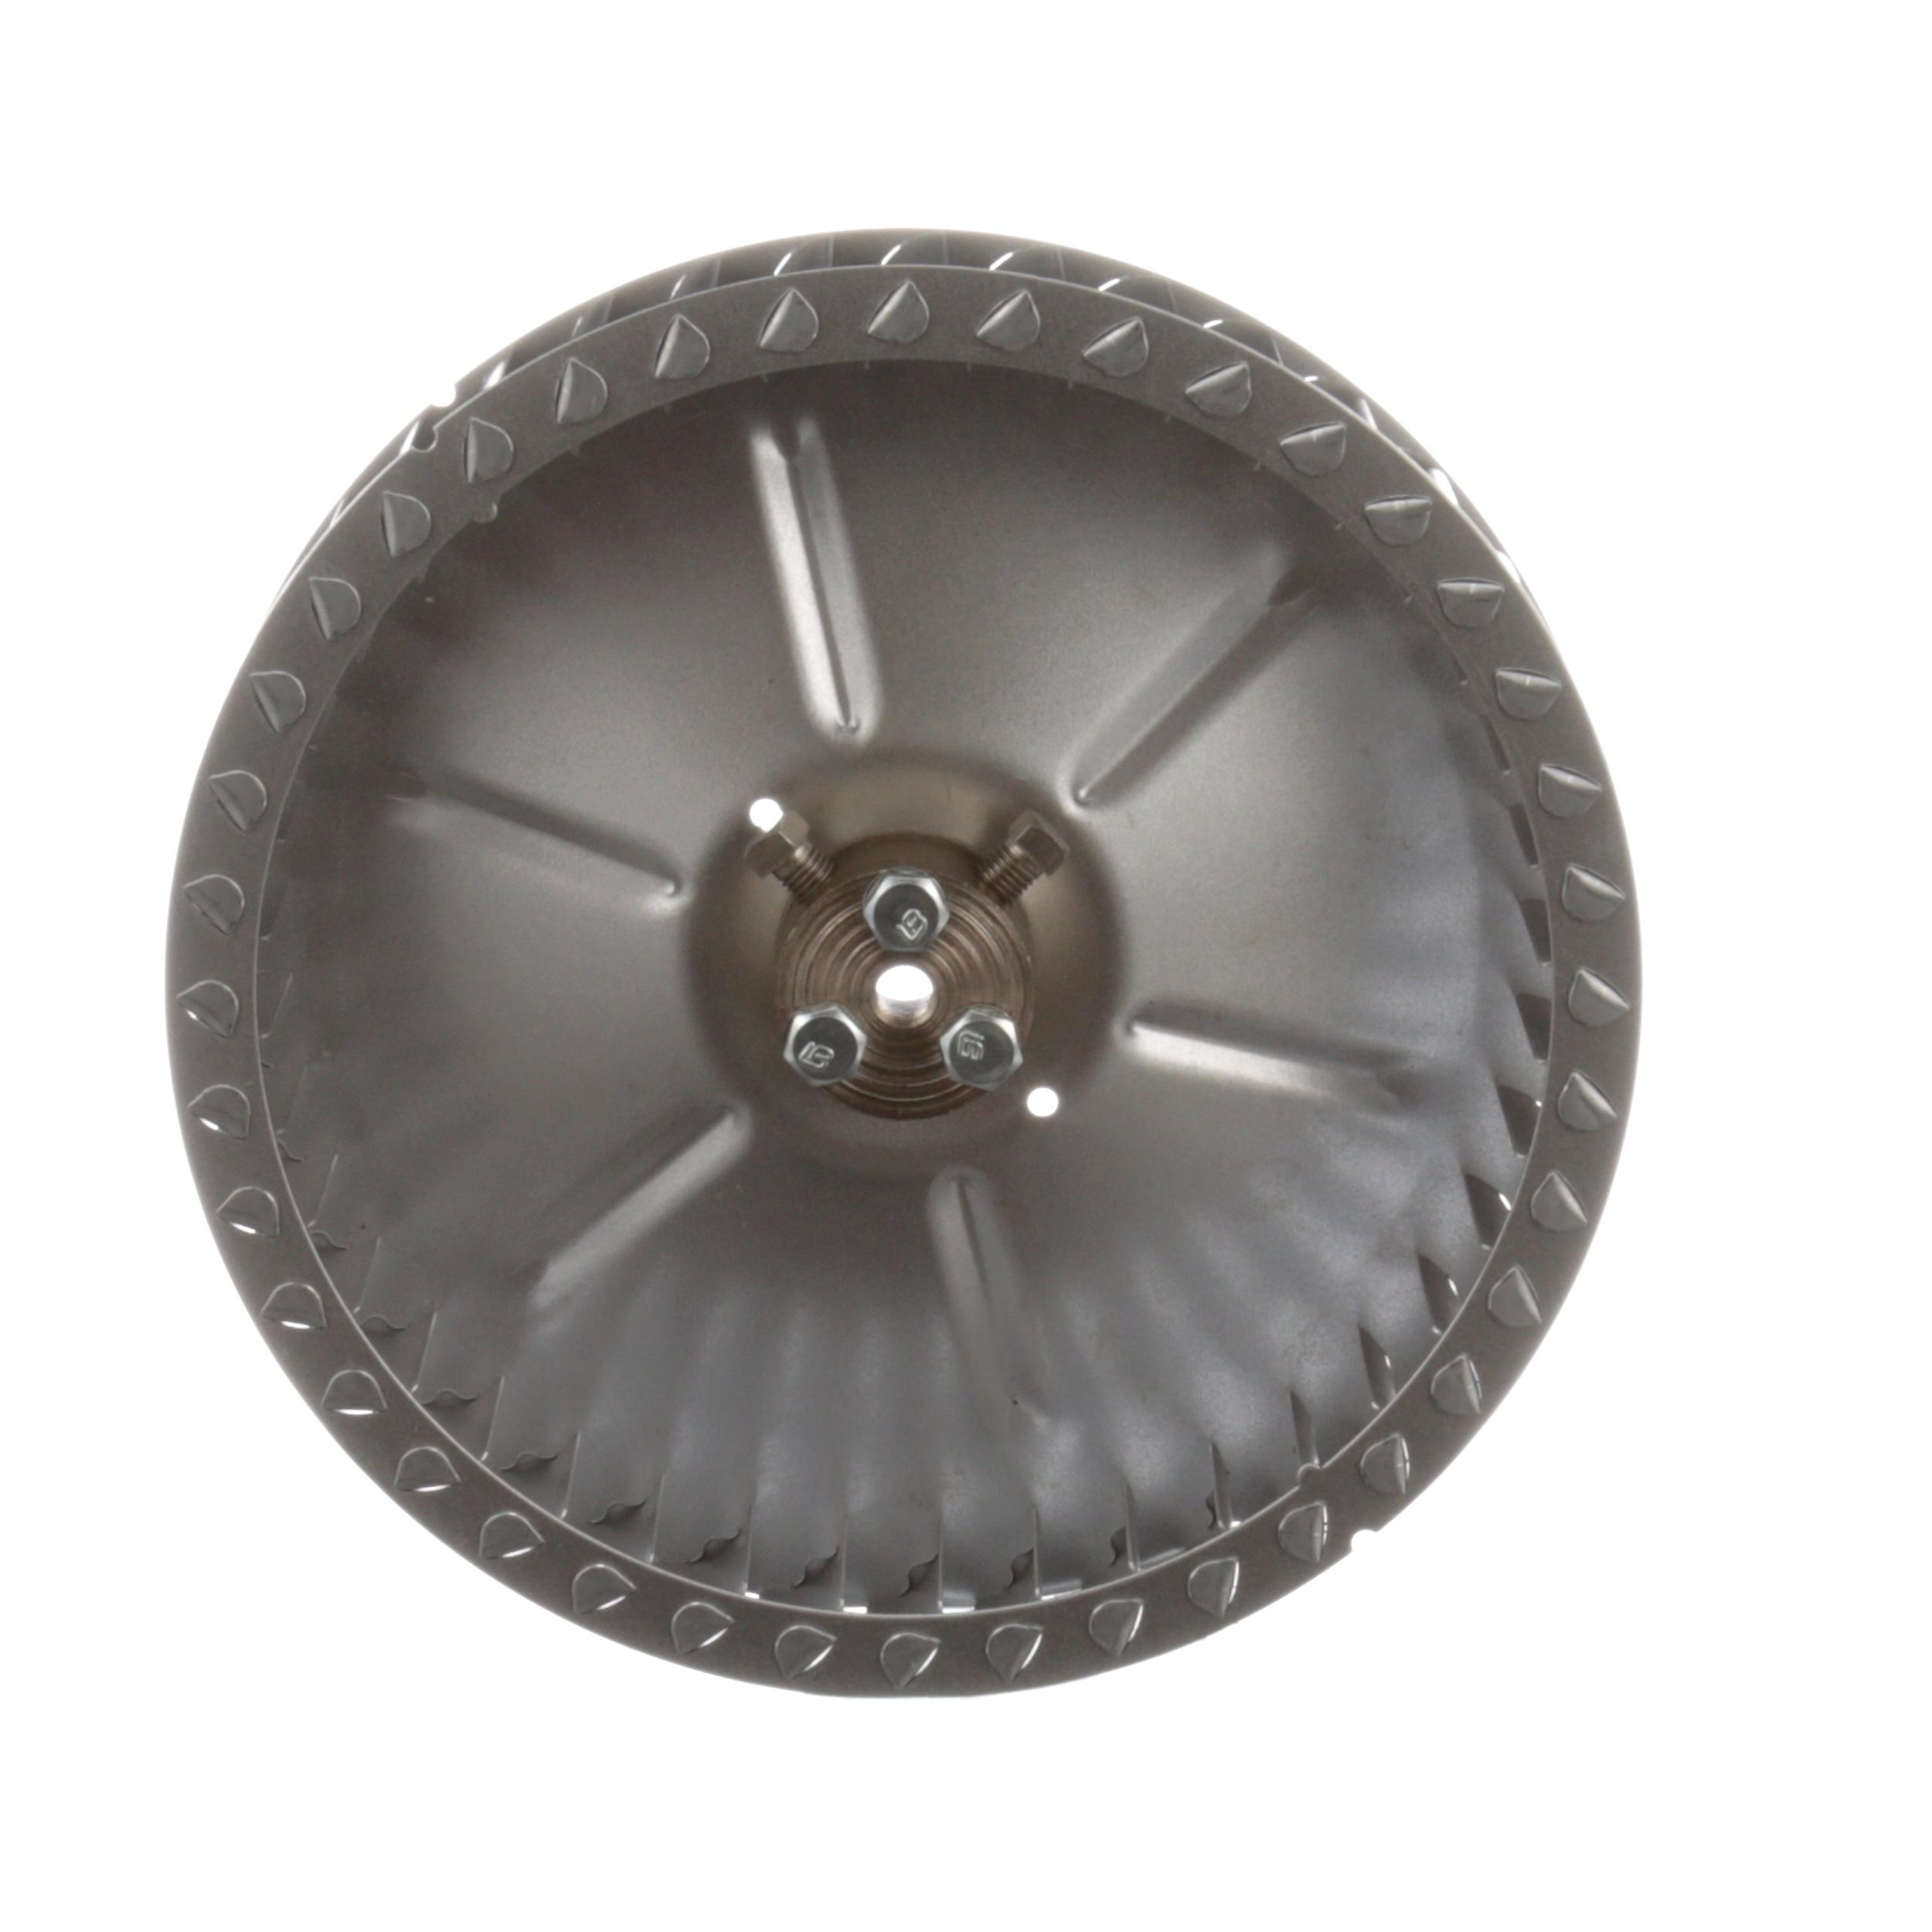 SOUTHBEND RANGE BLOWER WHEEL ASSEMBLY, GH